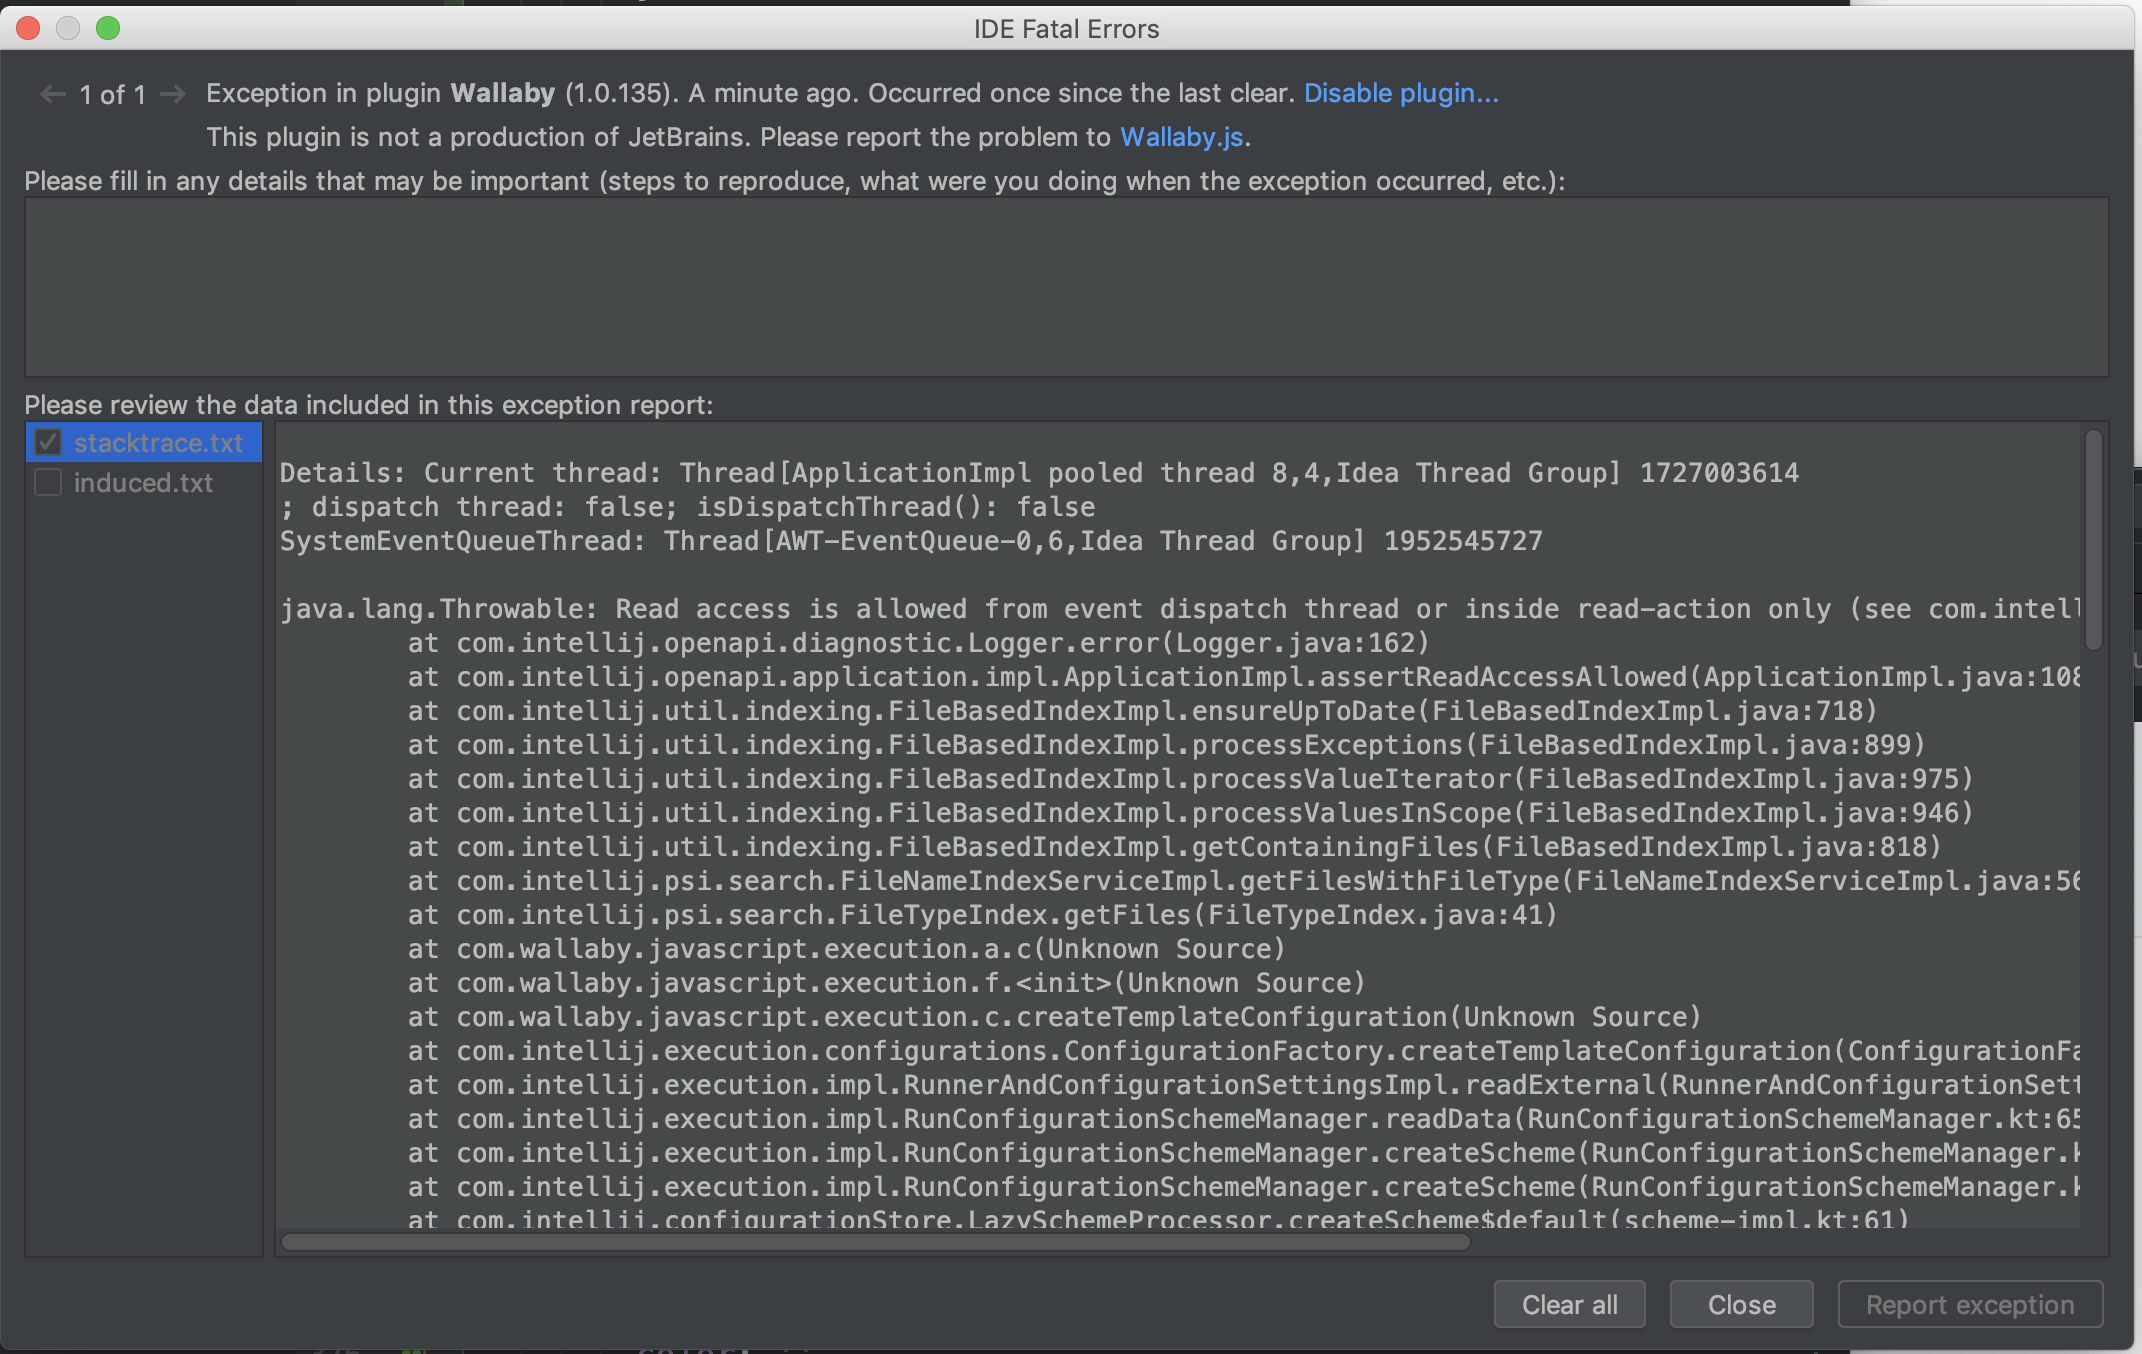 Webstorm complaining about a fatal error  I think since 1 0 135